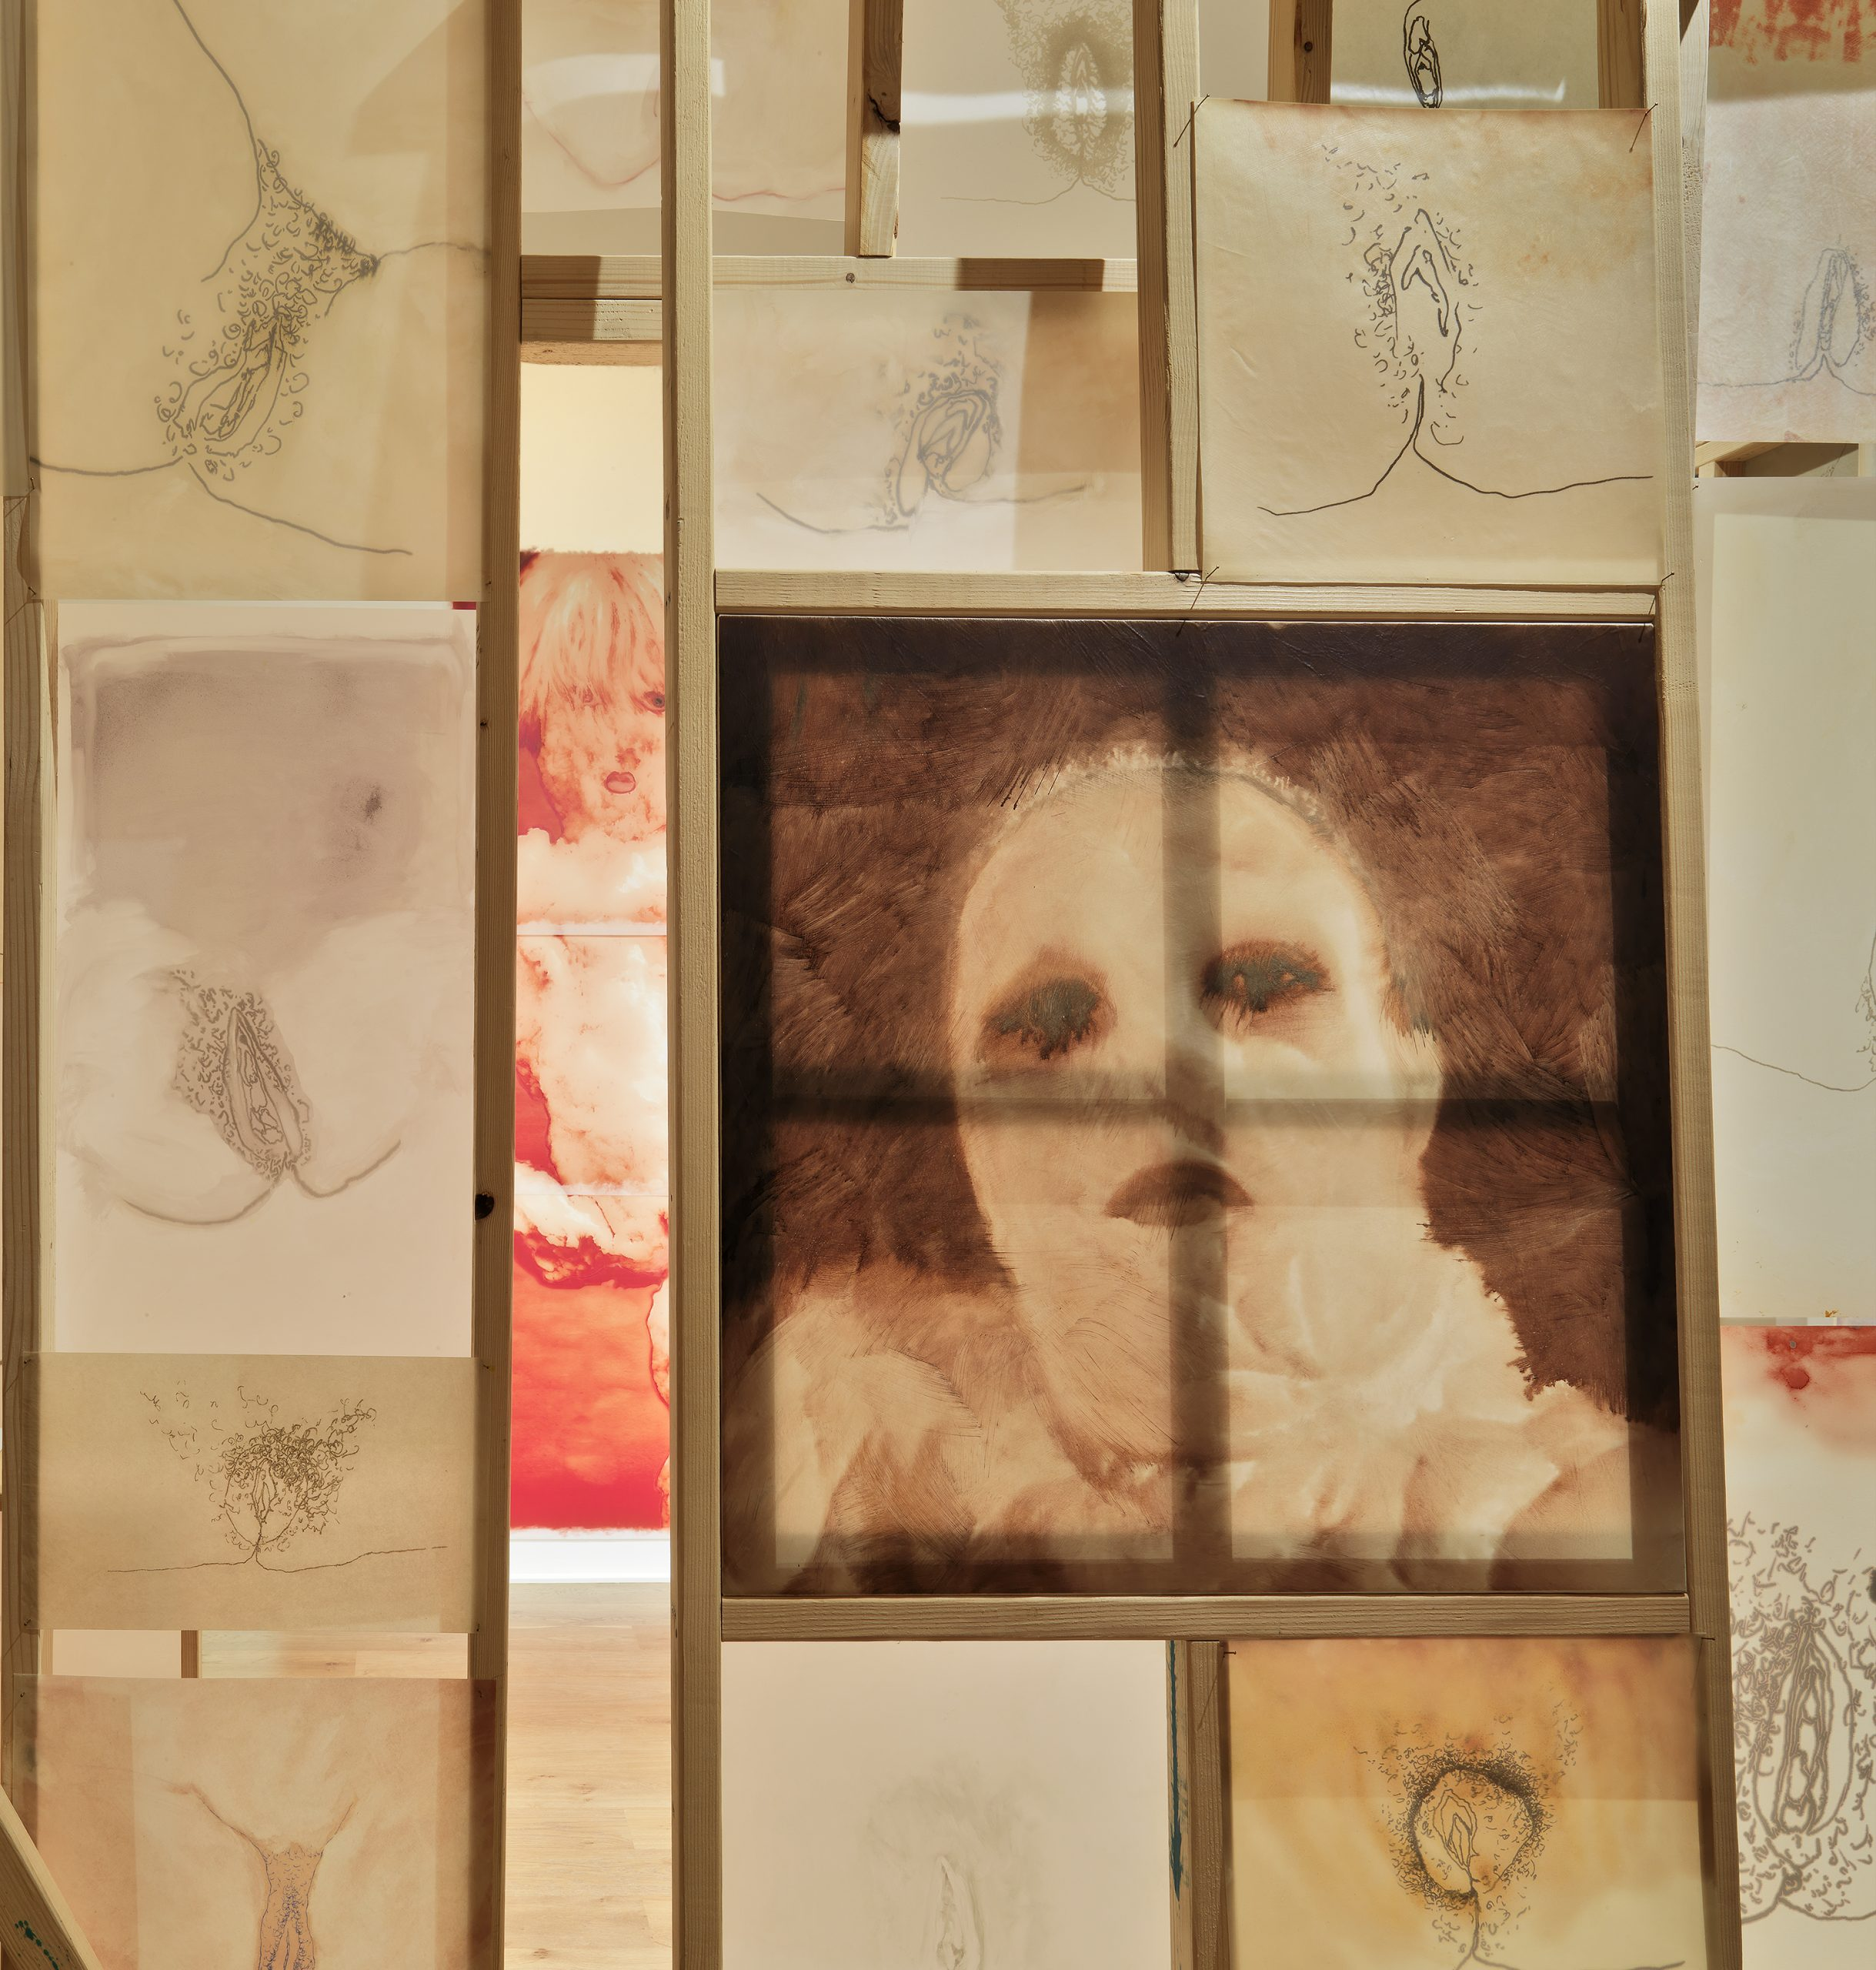 A thin wooden structure displays ink drawings of female genitalia with one portrait.